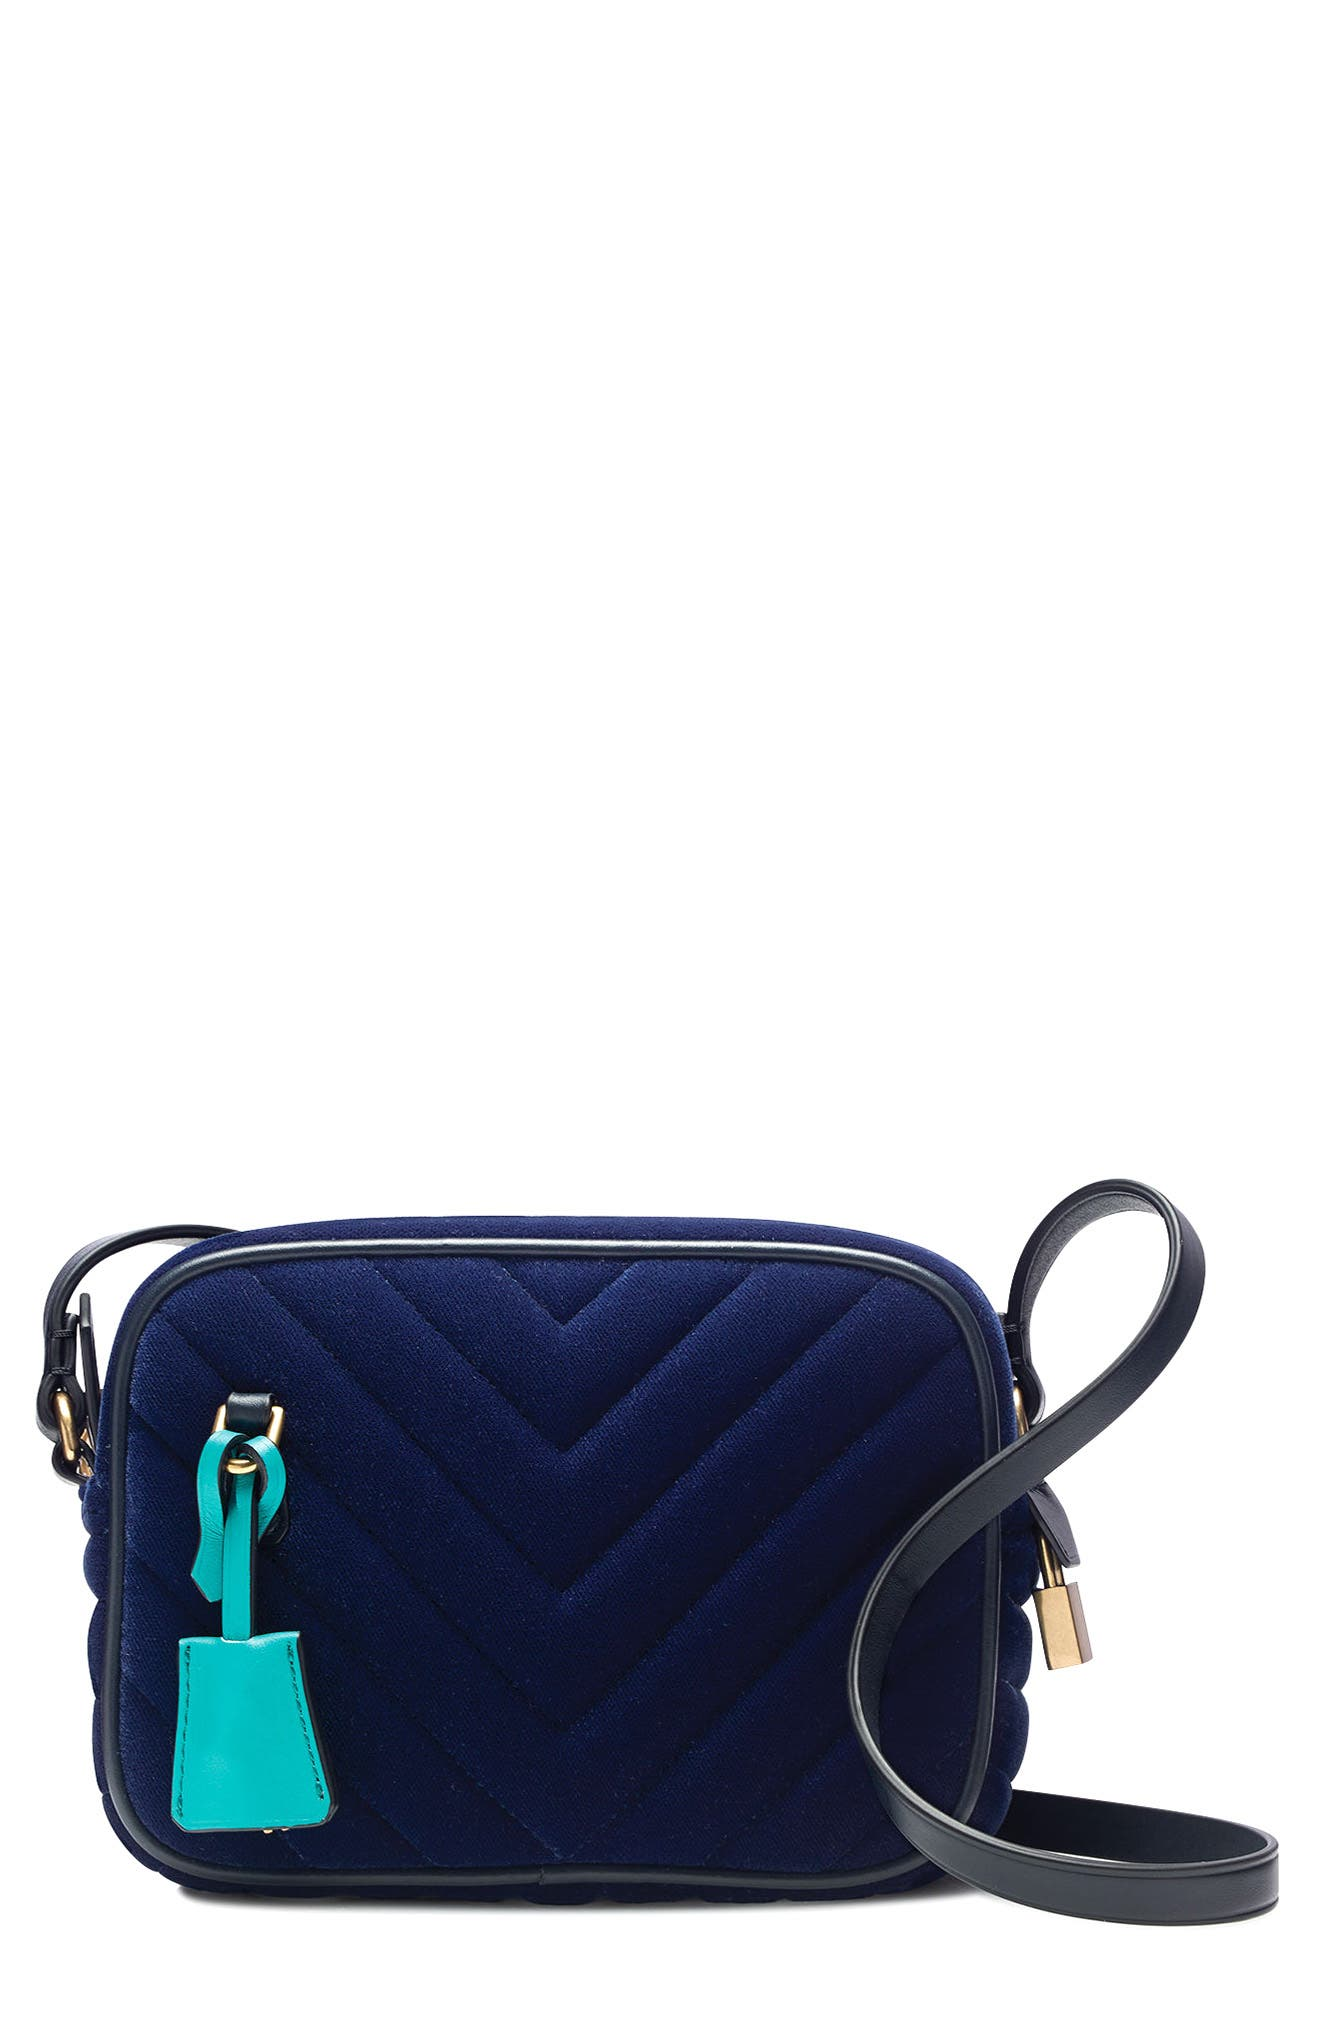 Mini Velvet Signet Bag,                         Main,                         color, Vivid Ink